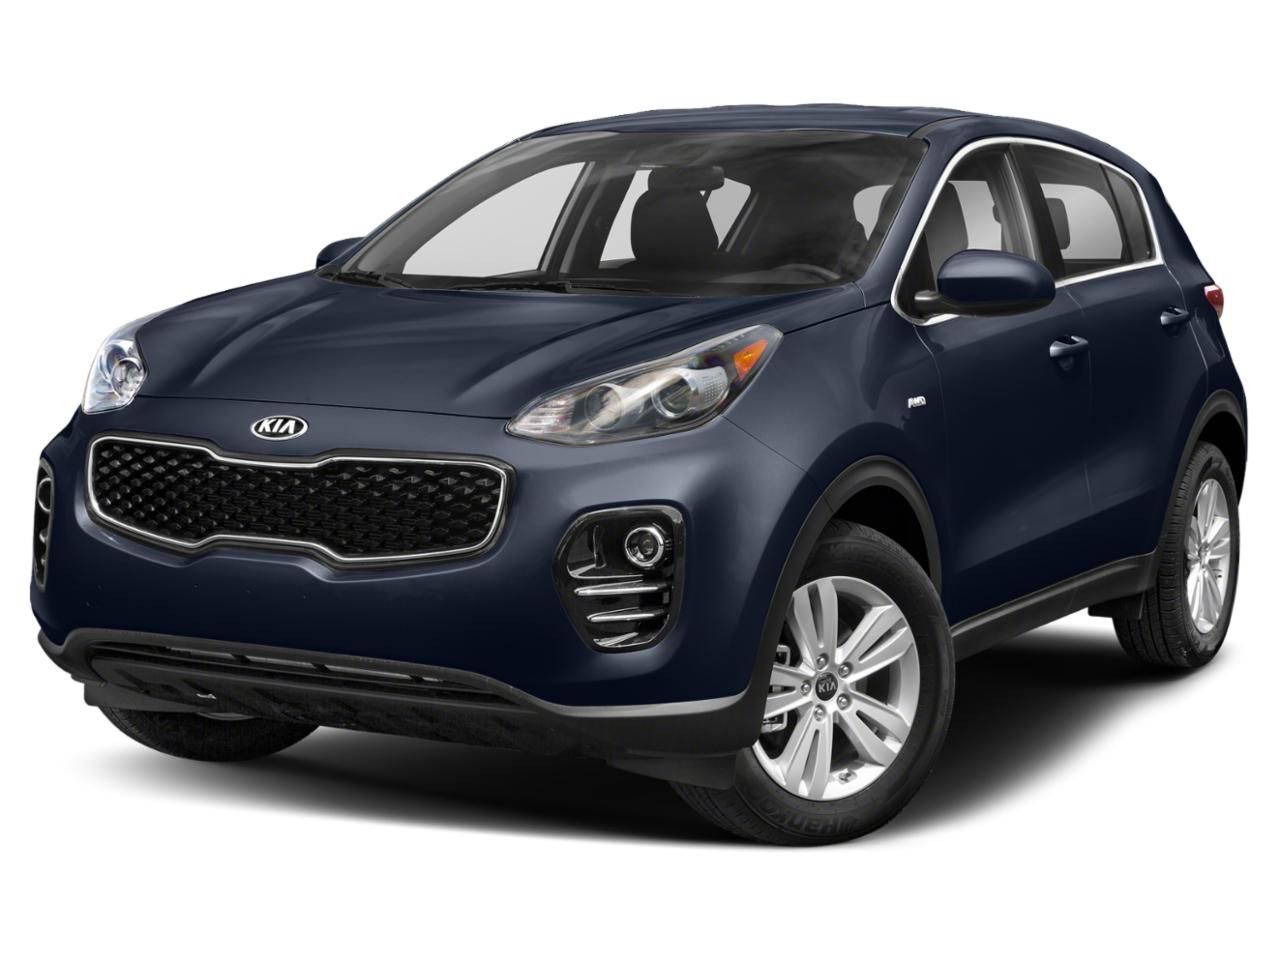 2019 Kia Sportage Vehicle Photo in Streetsboro, OH 44241